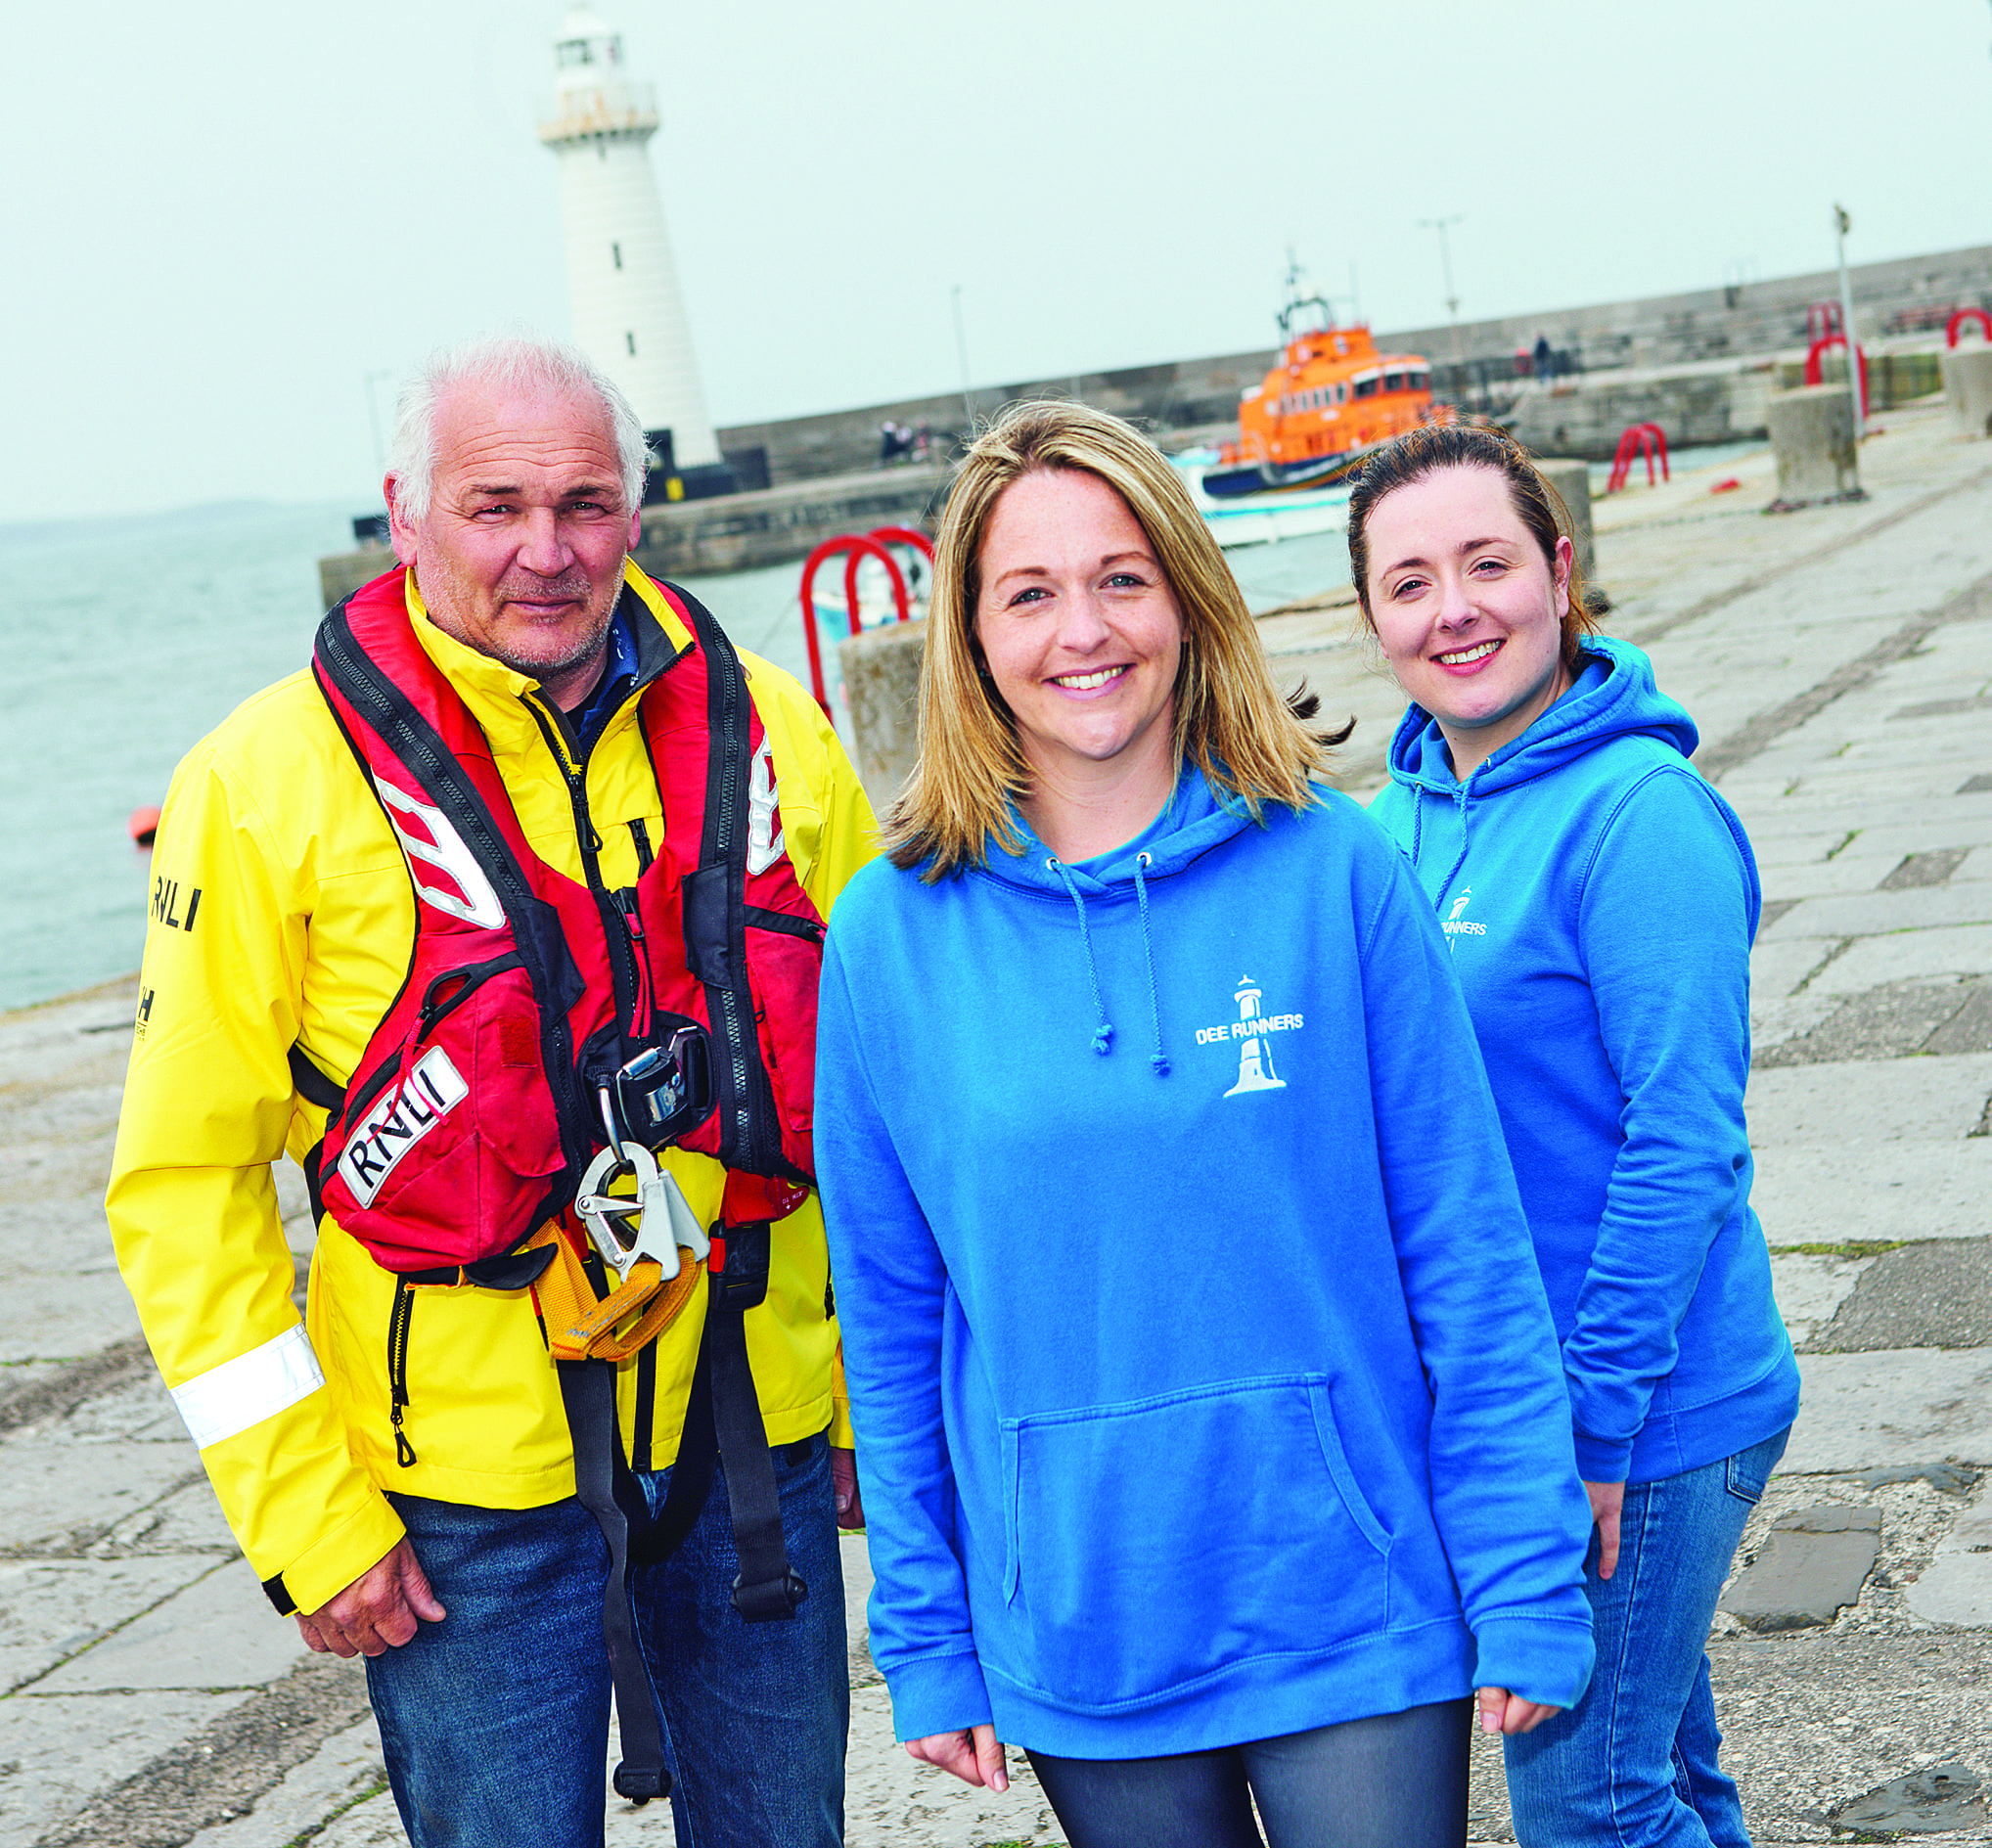 RNLI to benefit from local woman's first run in London race